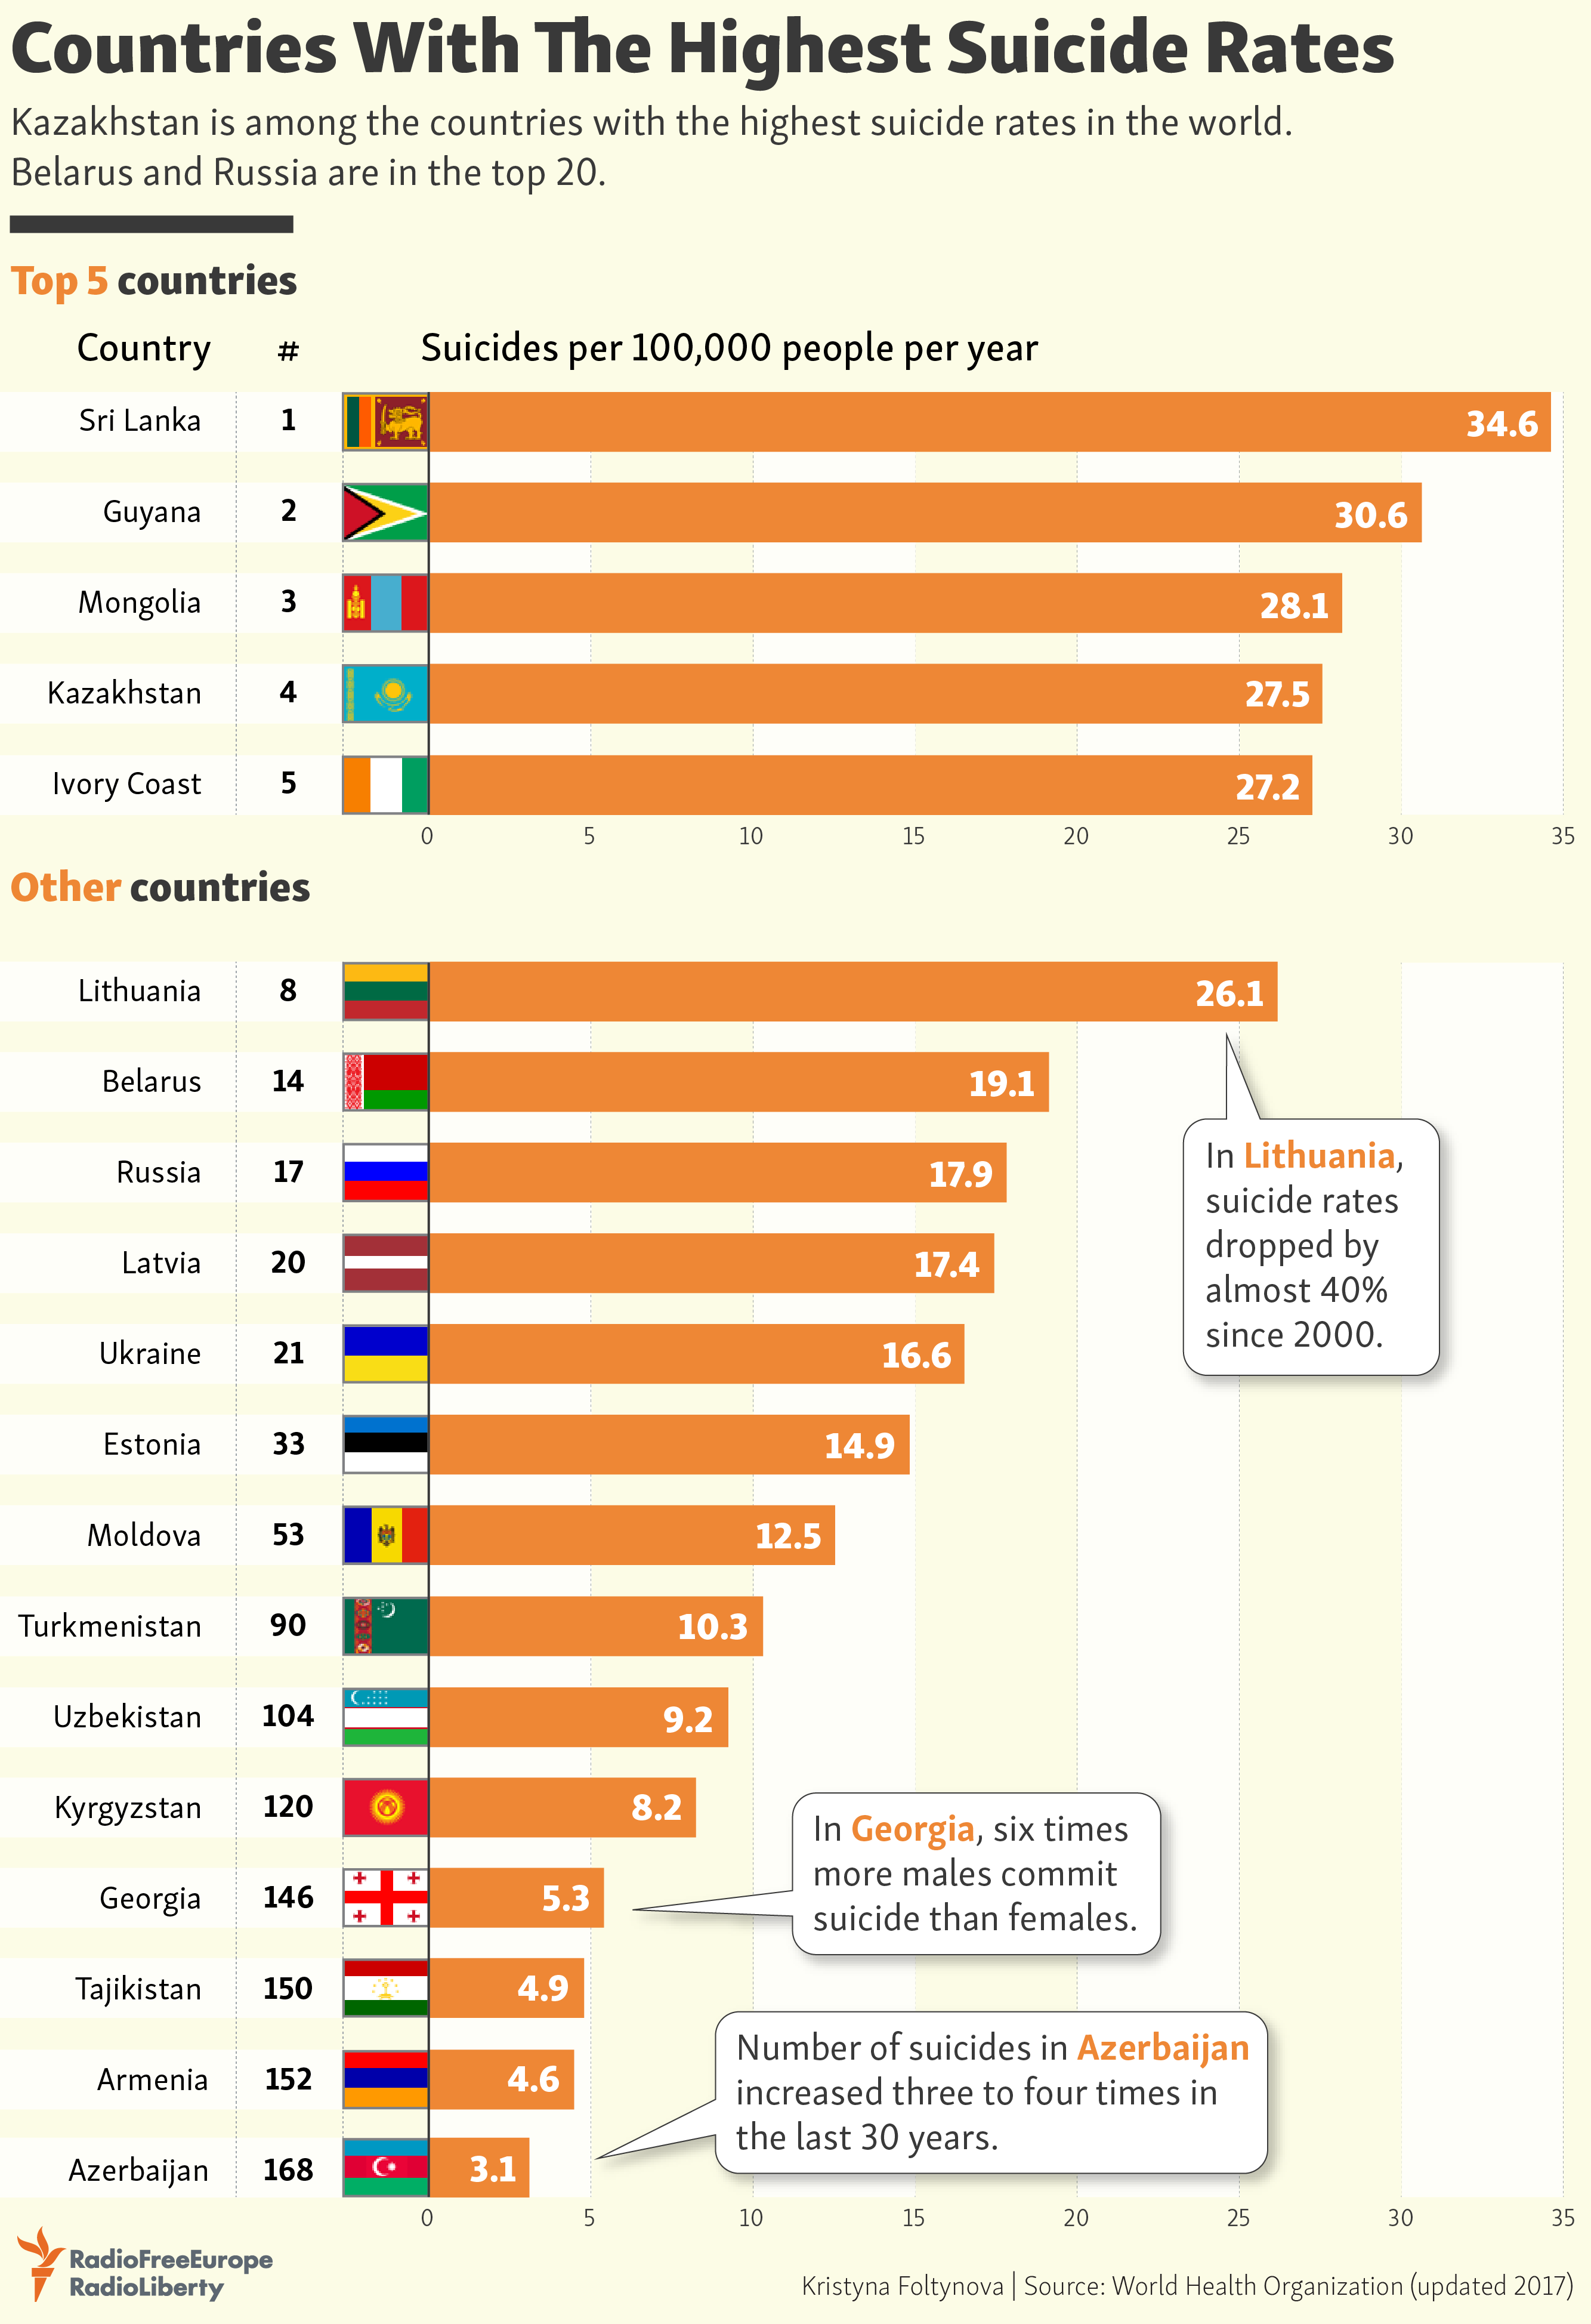 Countries With The Highest Suicide Rates